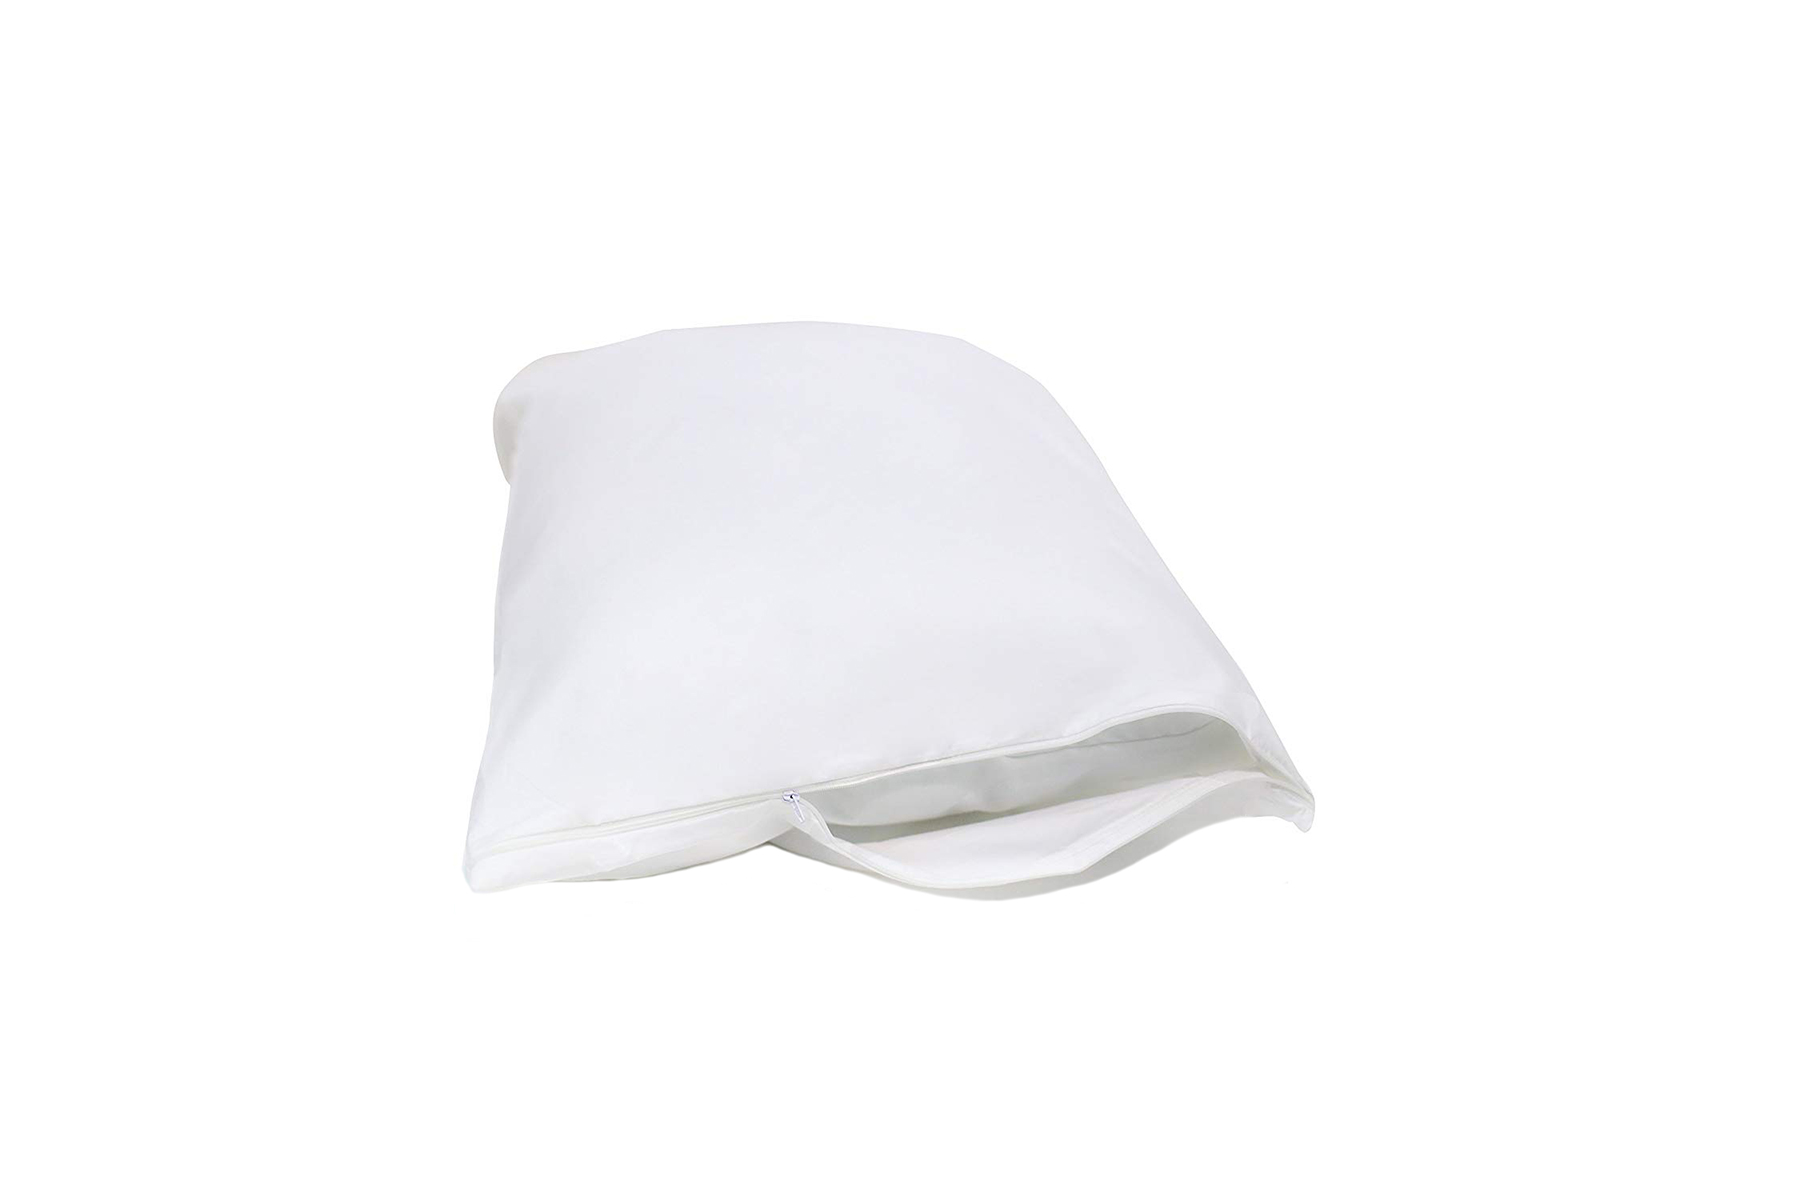 Allersoft Allergy Control Pillow Protector